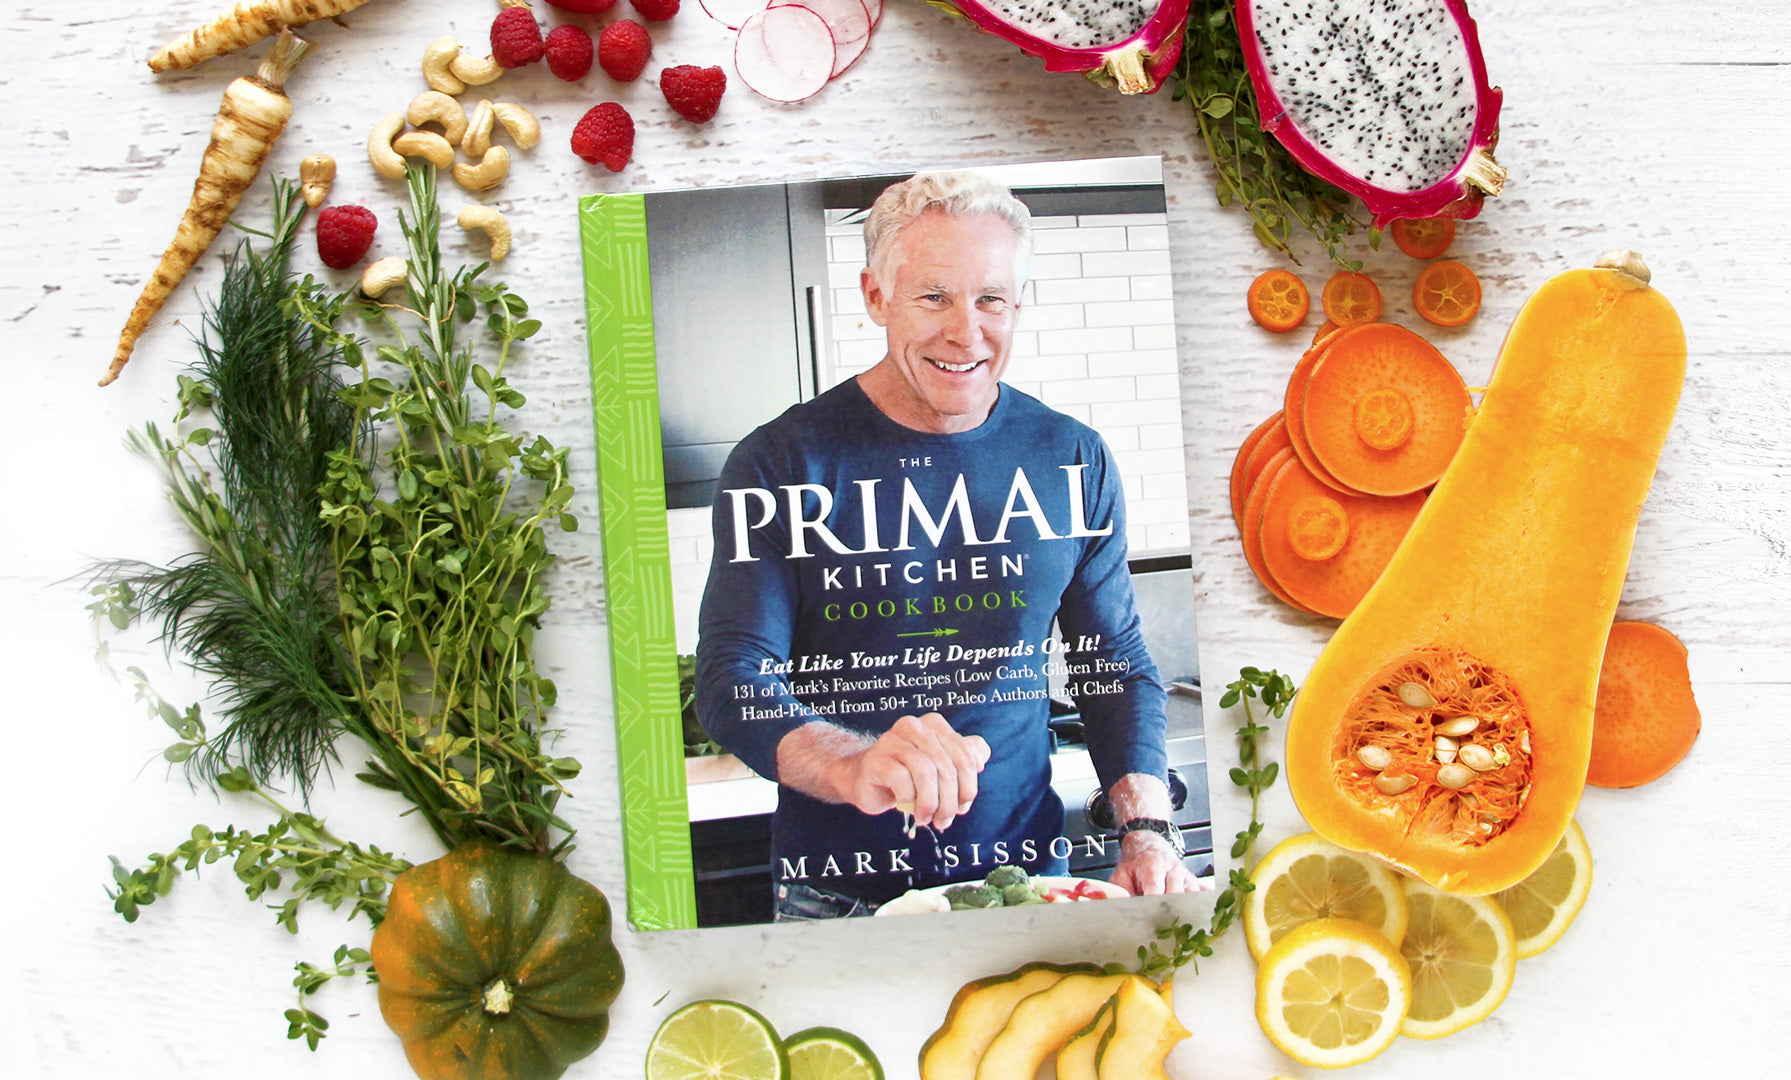 The primal kitchen cookbook is now available primal kitchen the primal kitchen cookbook is now available malvernweather Images